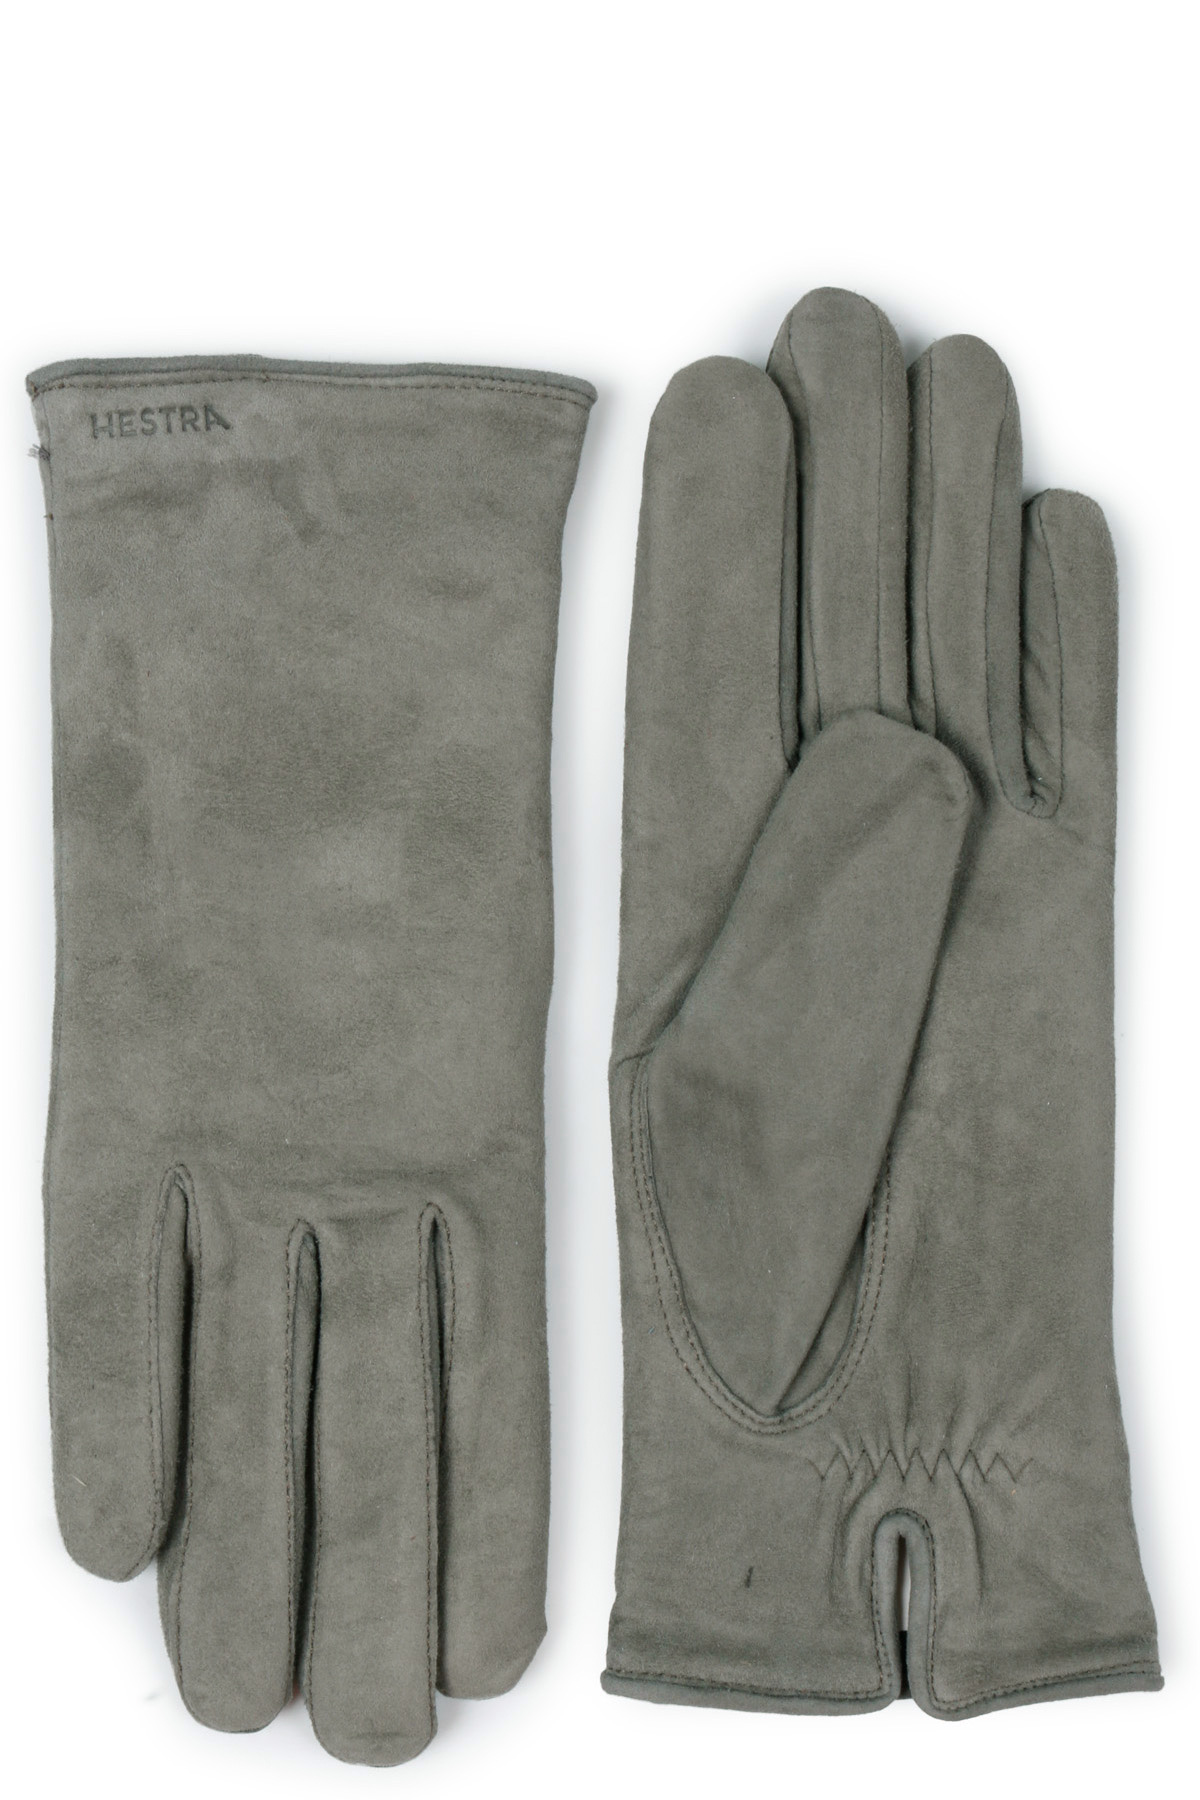 89b88f12830028 Gloves by Hestra in grey/green